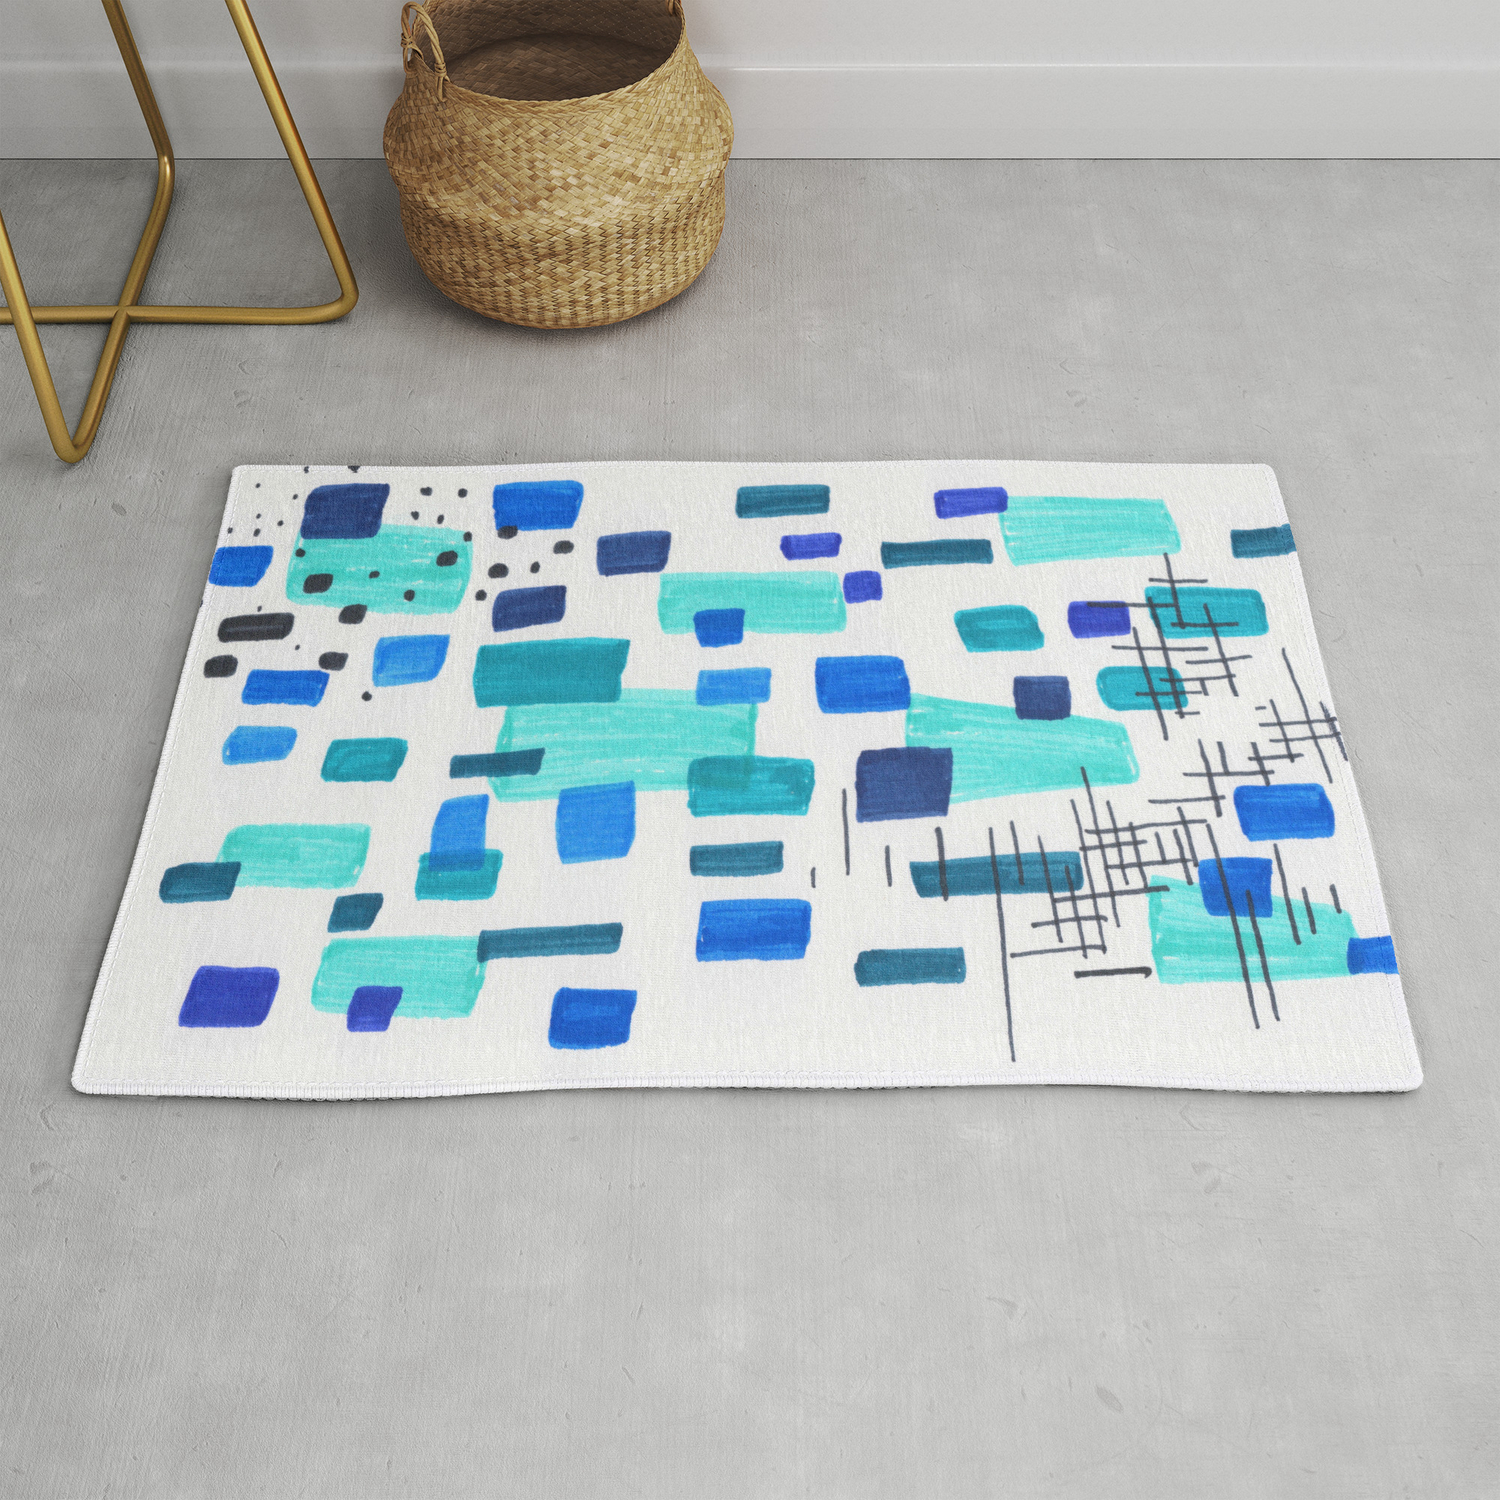 Minimalist Abstract Juvenile Colorful Aqua Blue Shapes Pattern Mid Century Modern Rug By Enshape